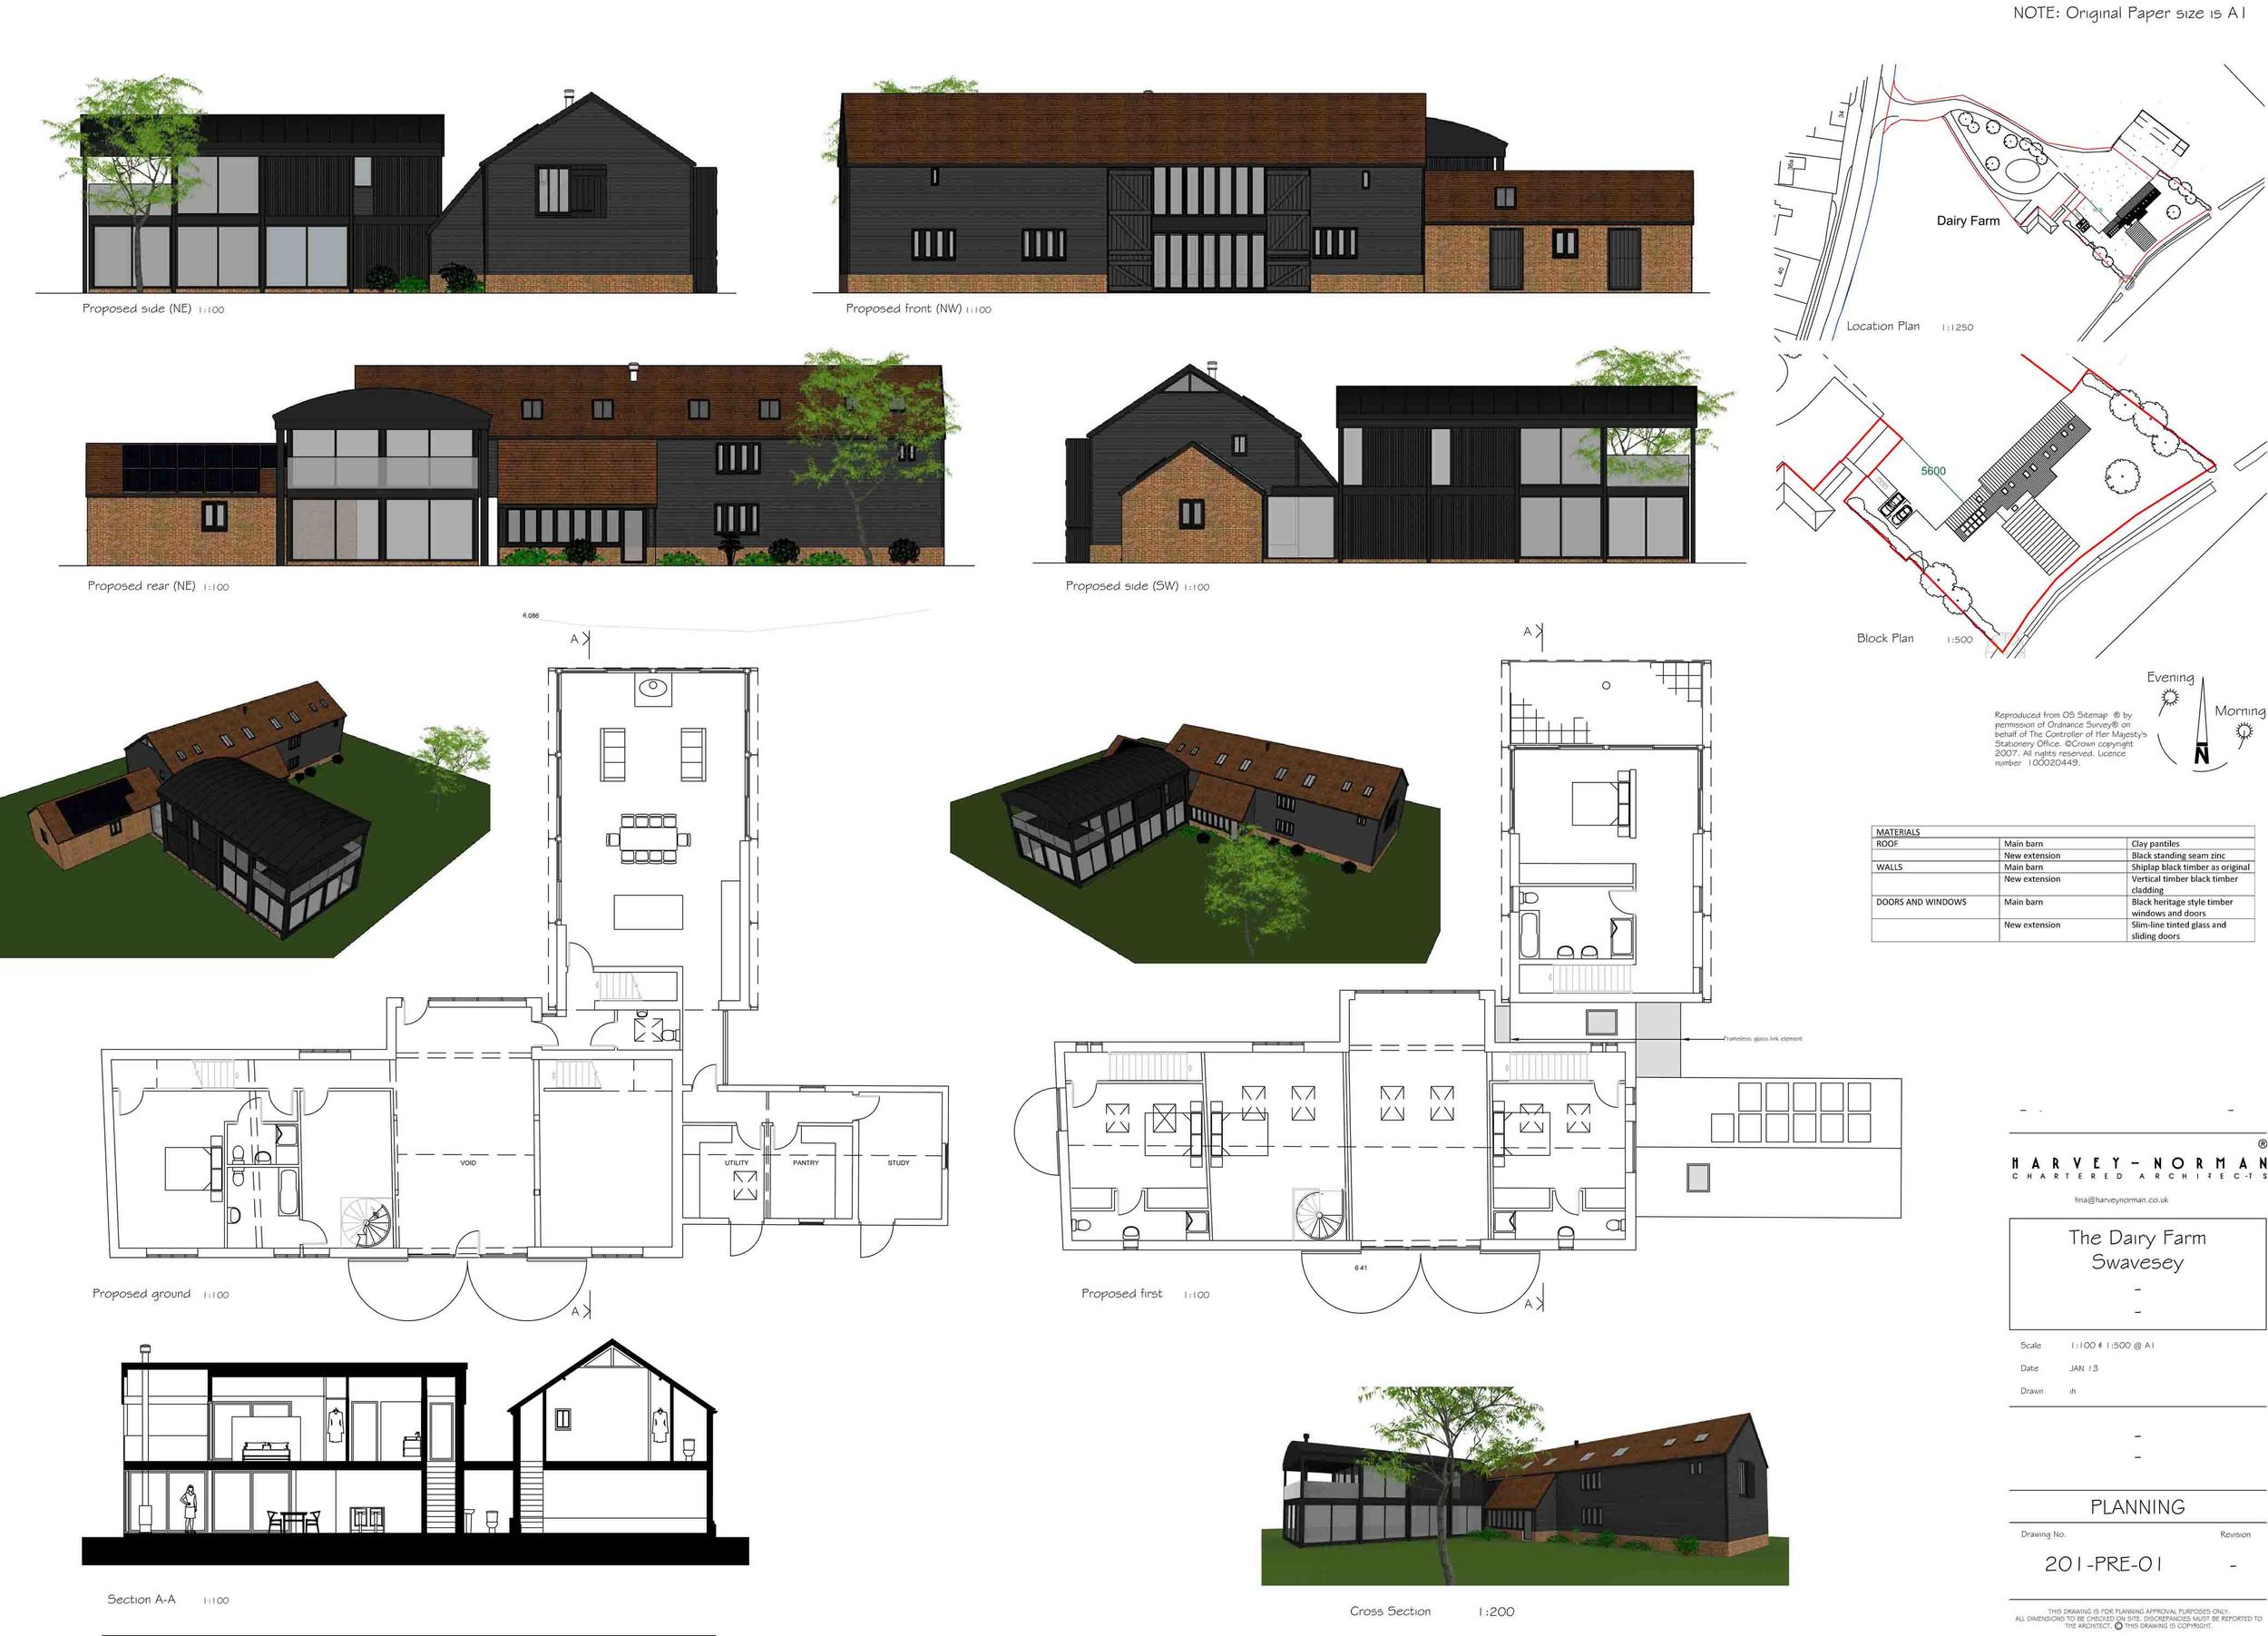 Architects plans and drawings for Swavesey residential barn conversion, by Harvey Norman Architects